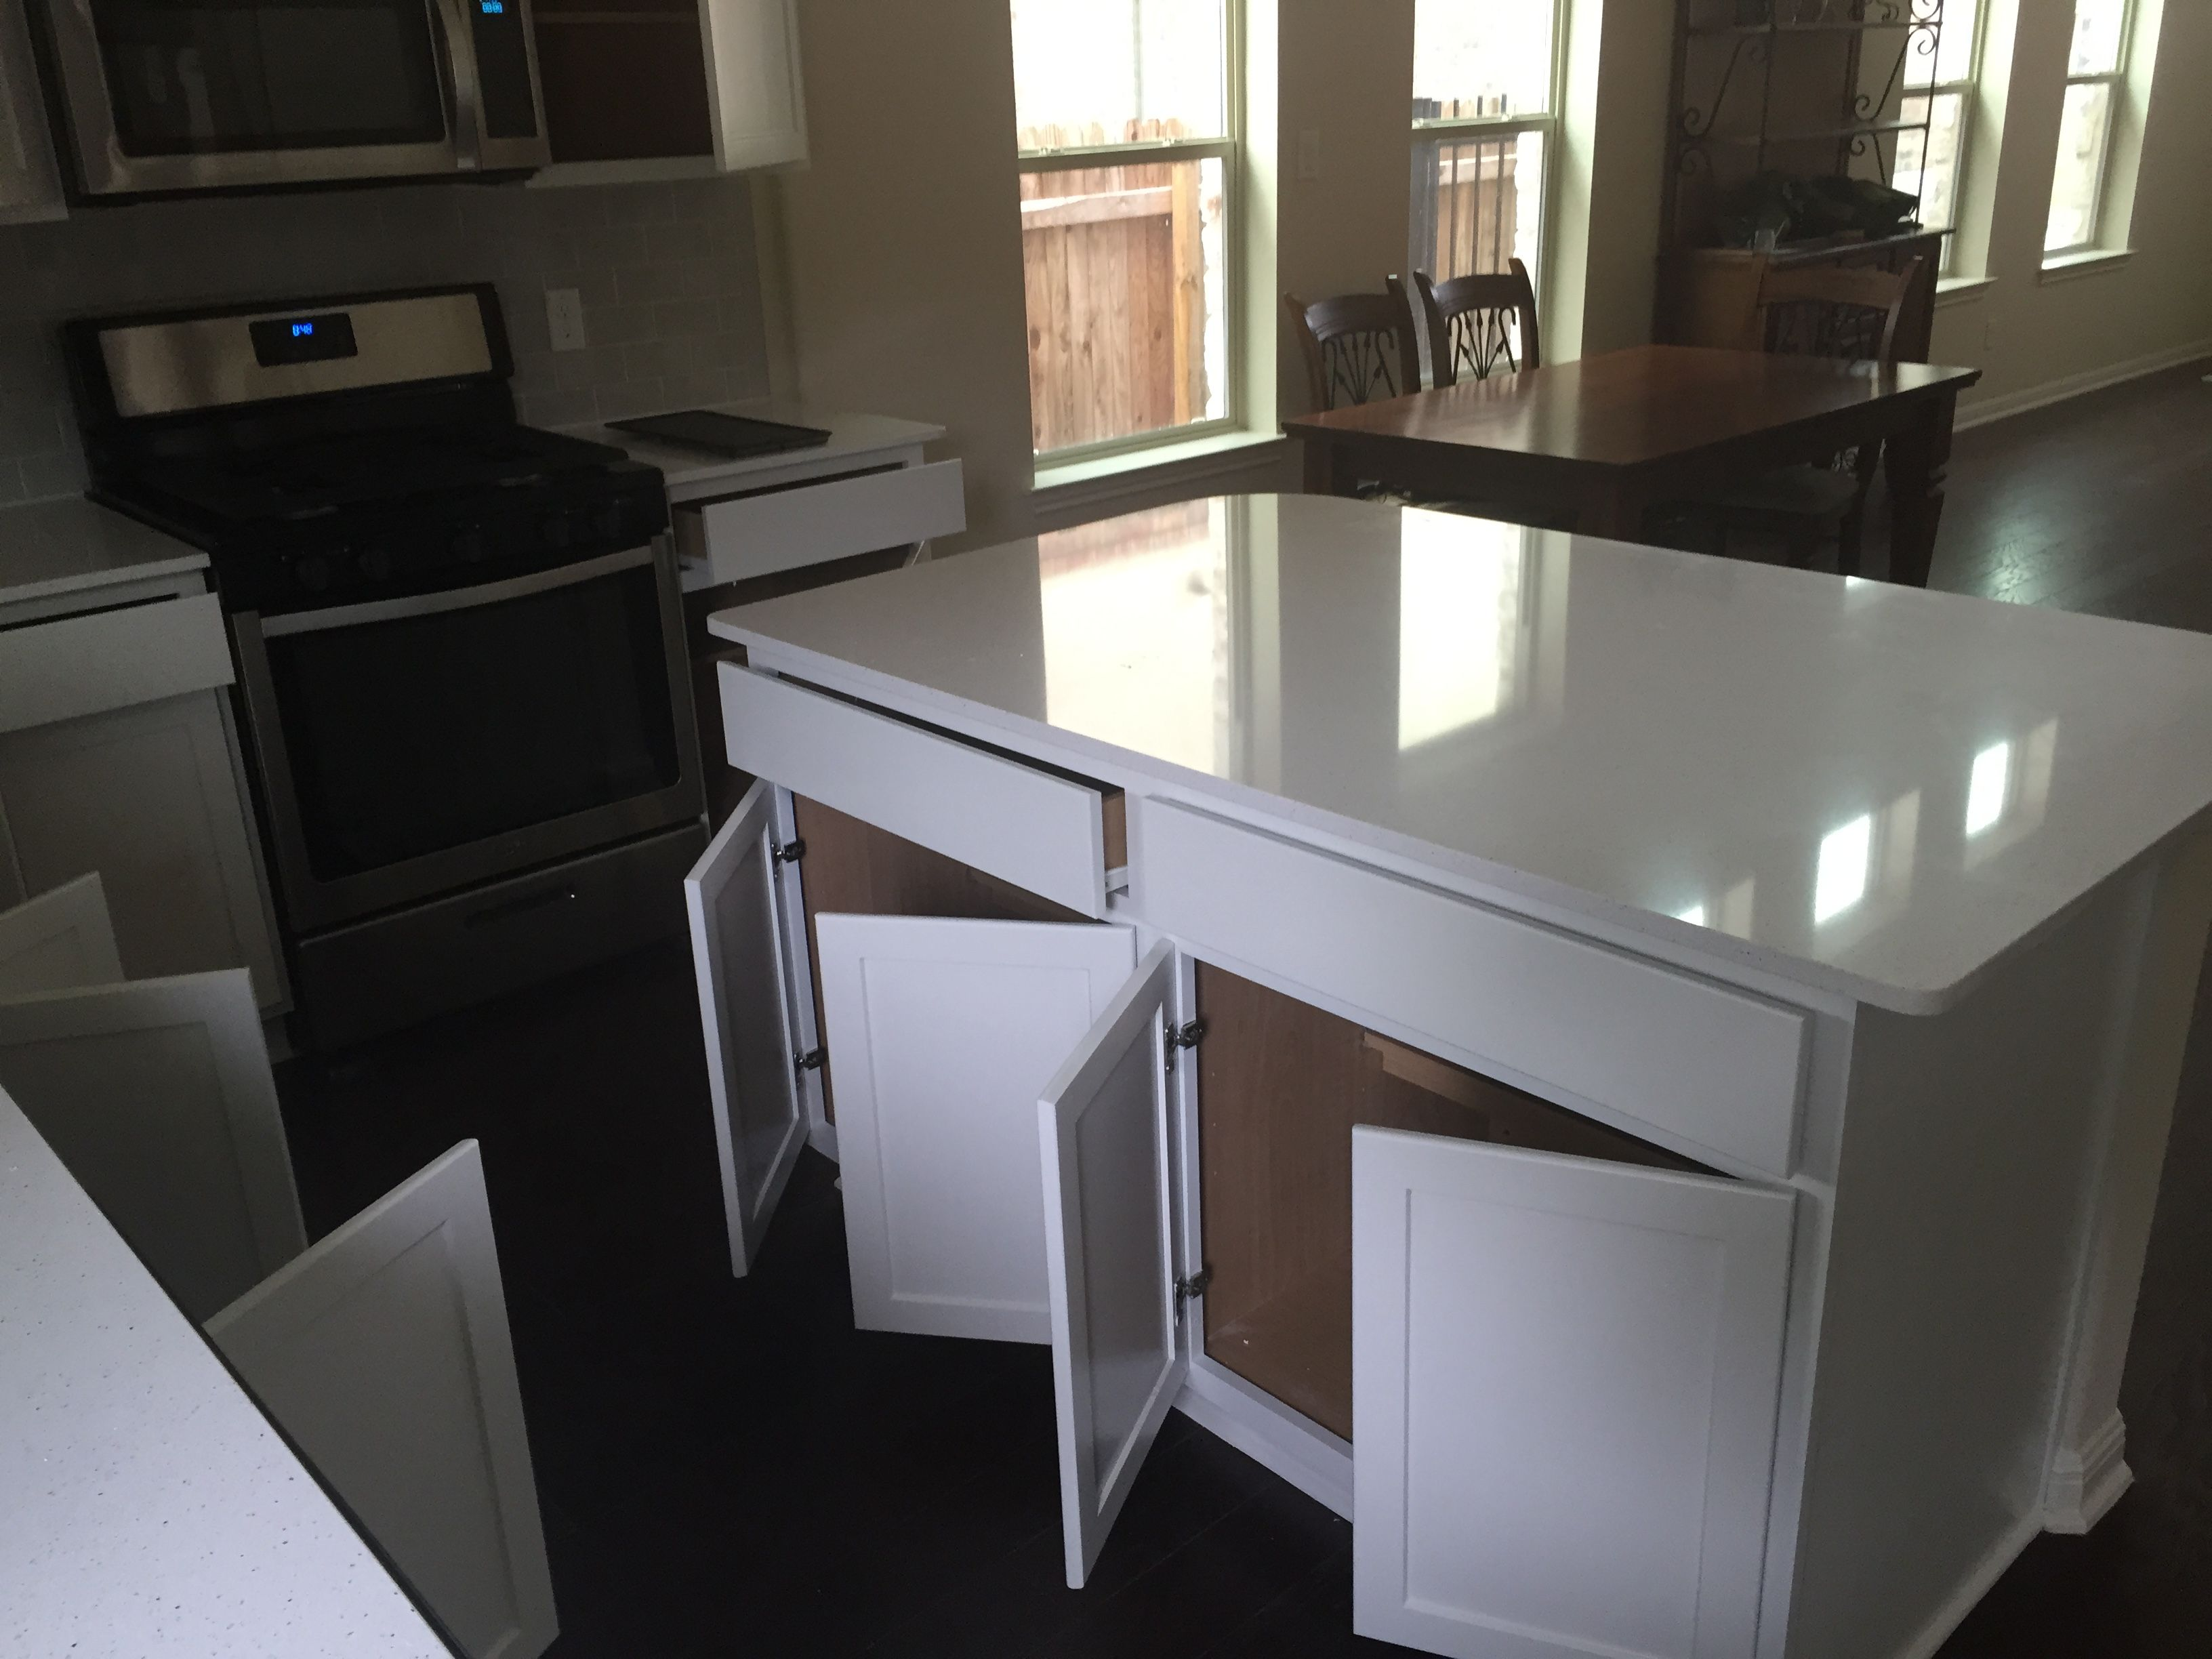 How To Brighten Up A Dark Kitchen Without Painting We Painted The Dark Kitchen Cabinets In This Cedar Park Home White To Help Brighten Up The Kitchen After White Kitchen Cabinets Dark Kitchen Kitchen Cabinets